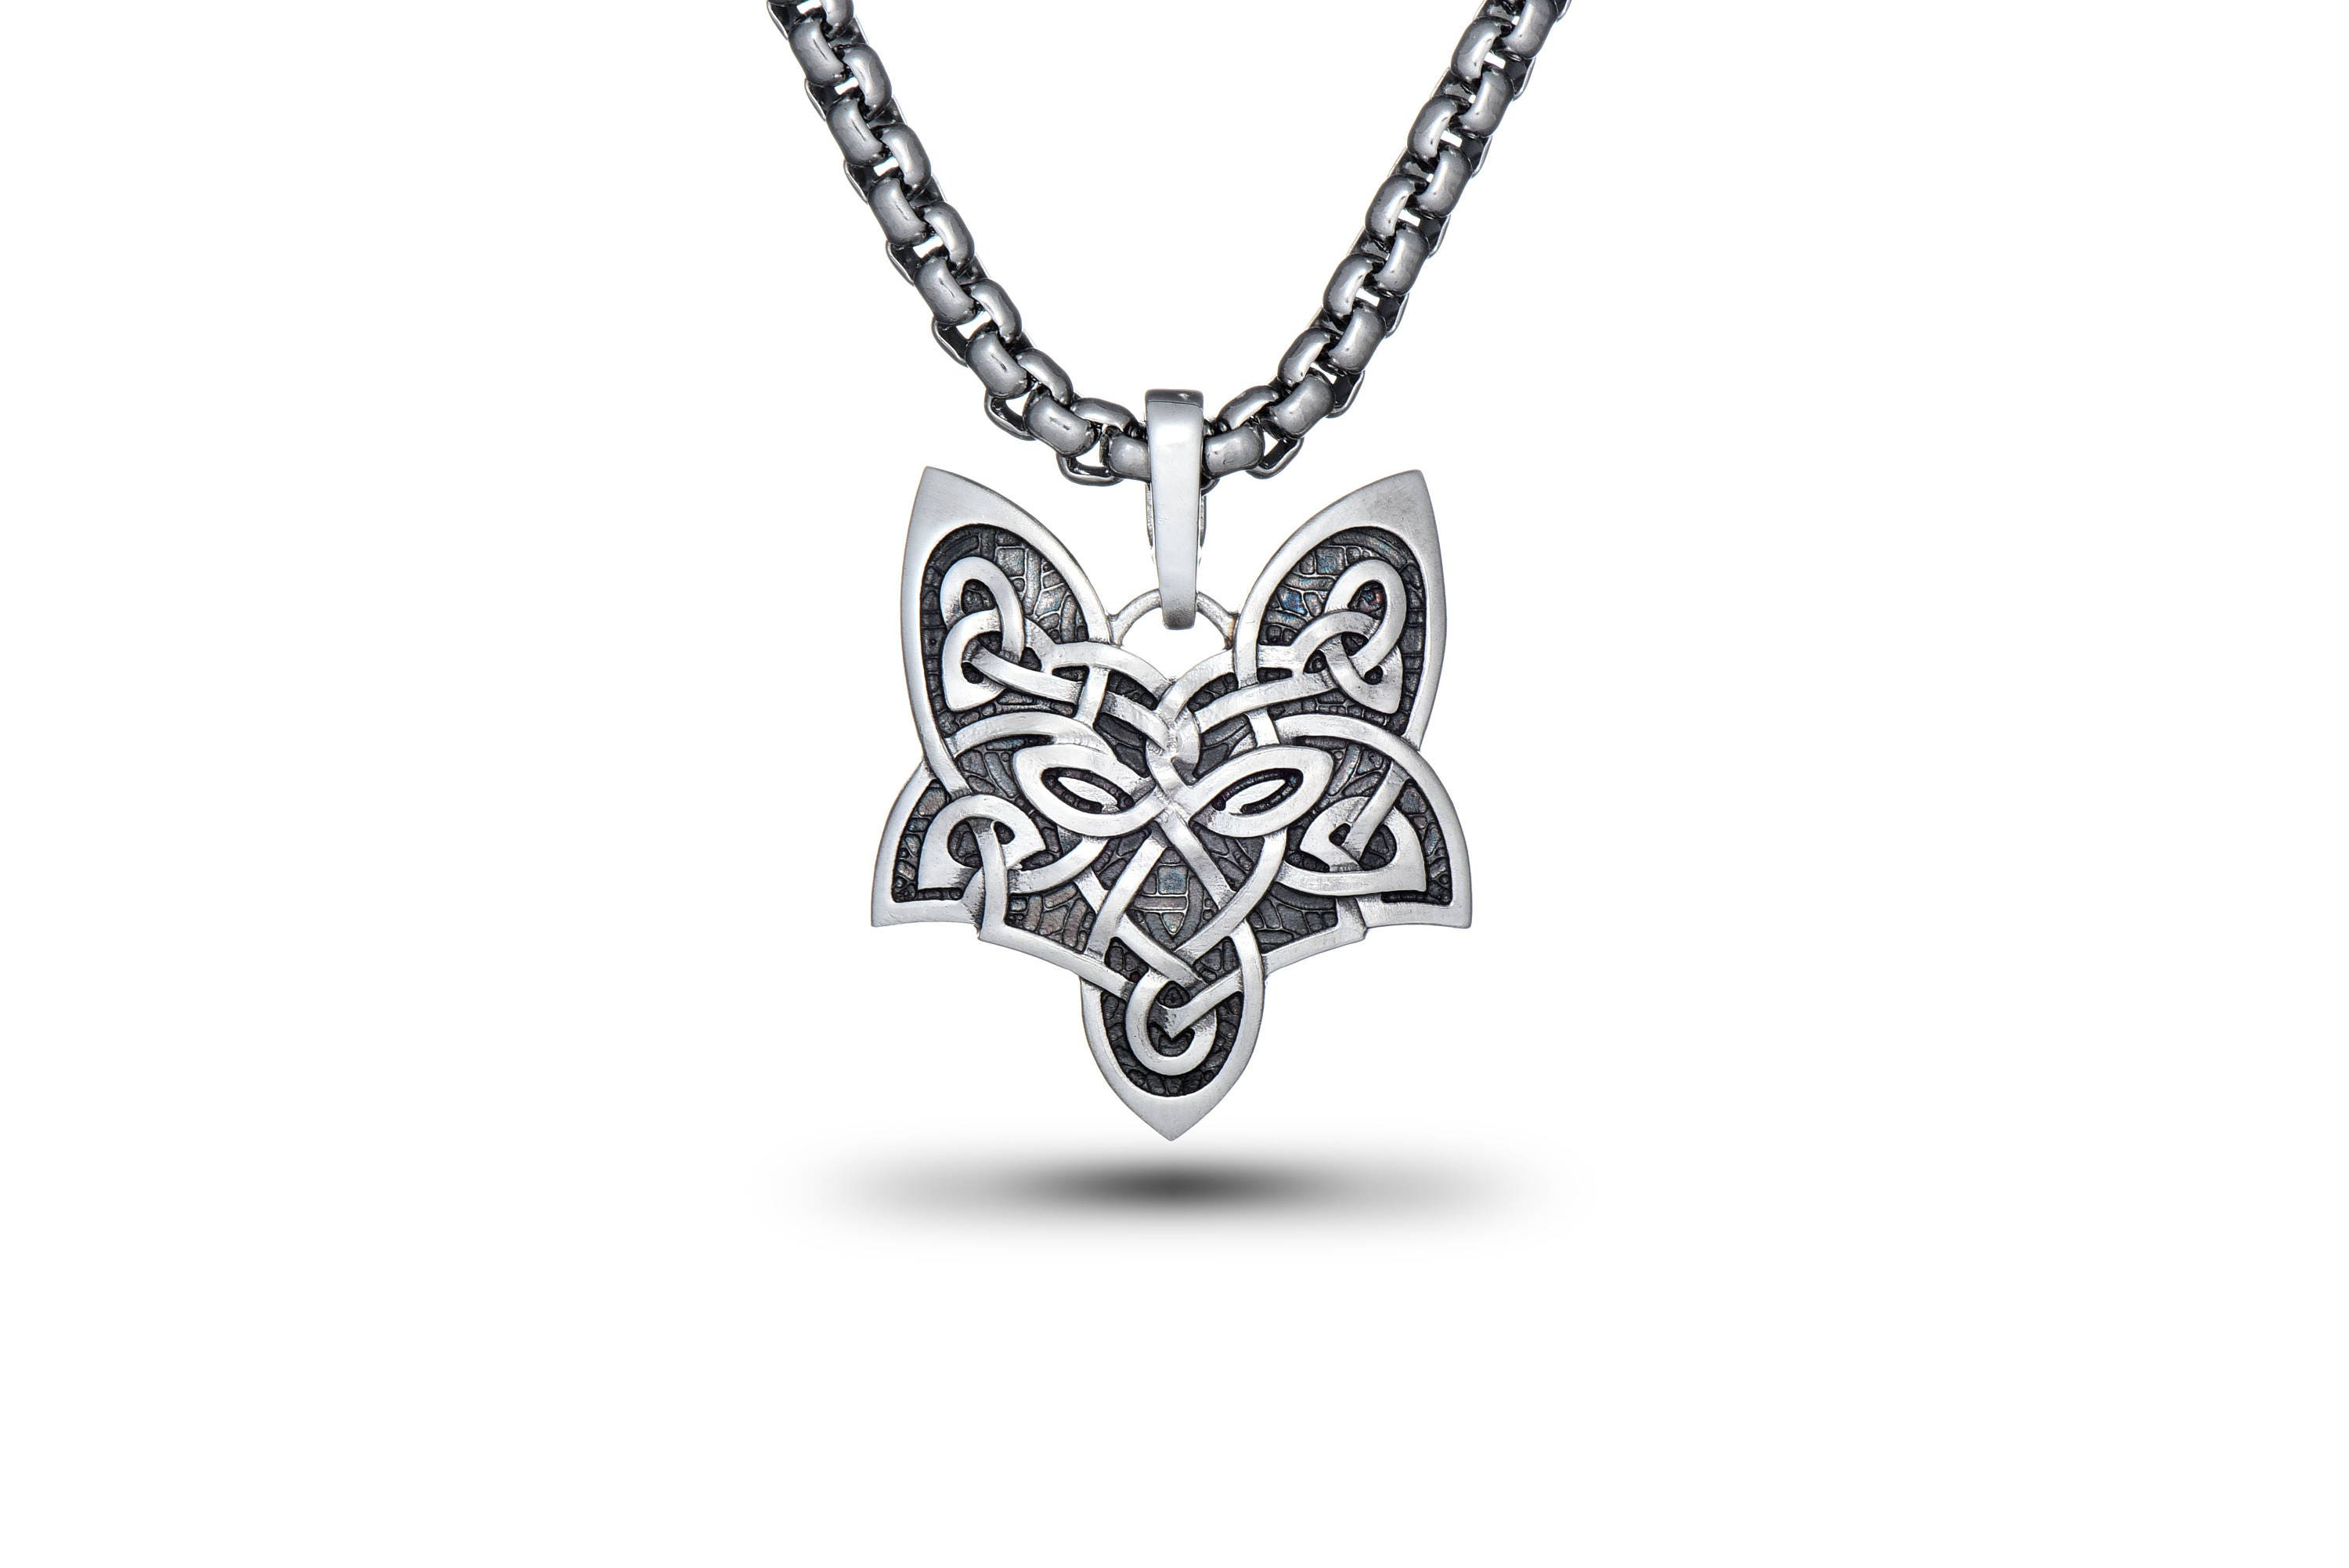 pendant legacy thunder shop celtic knot sterling silver product store necklace